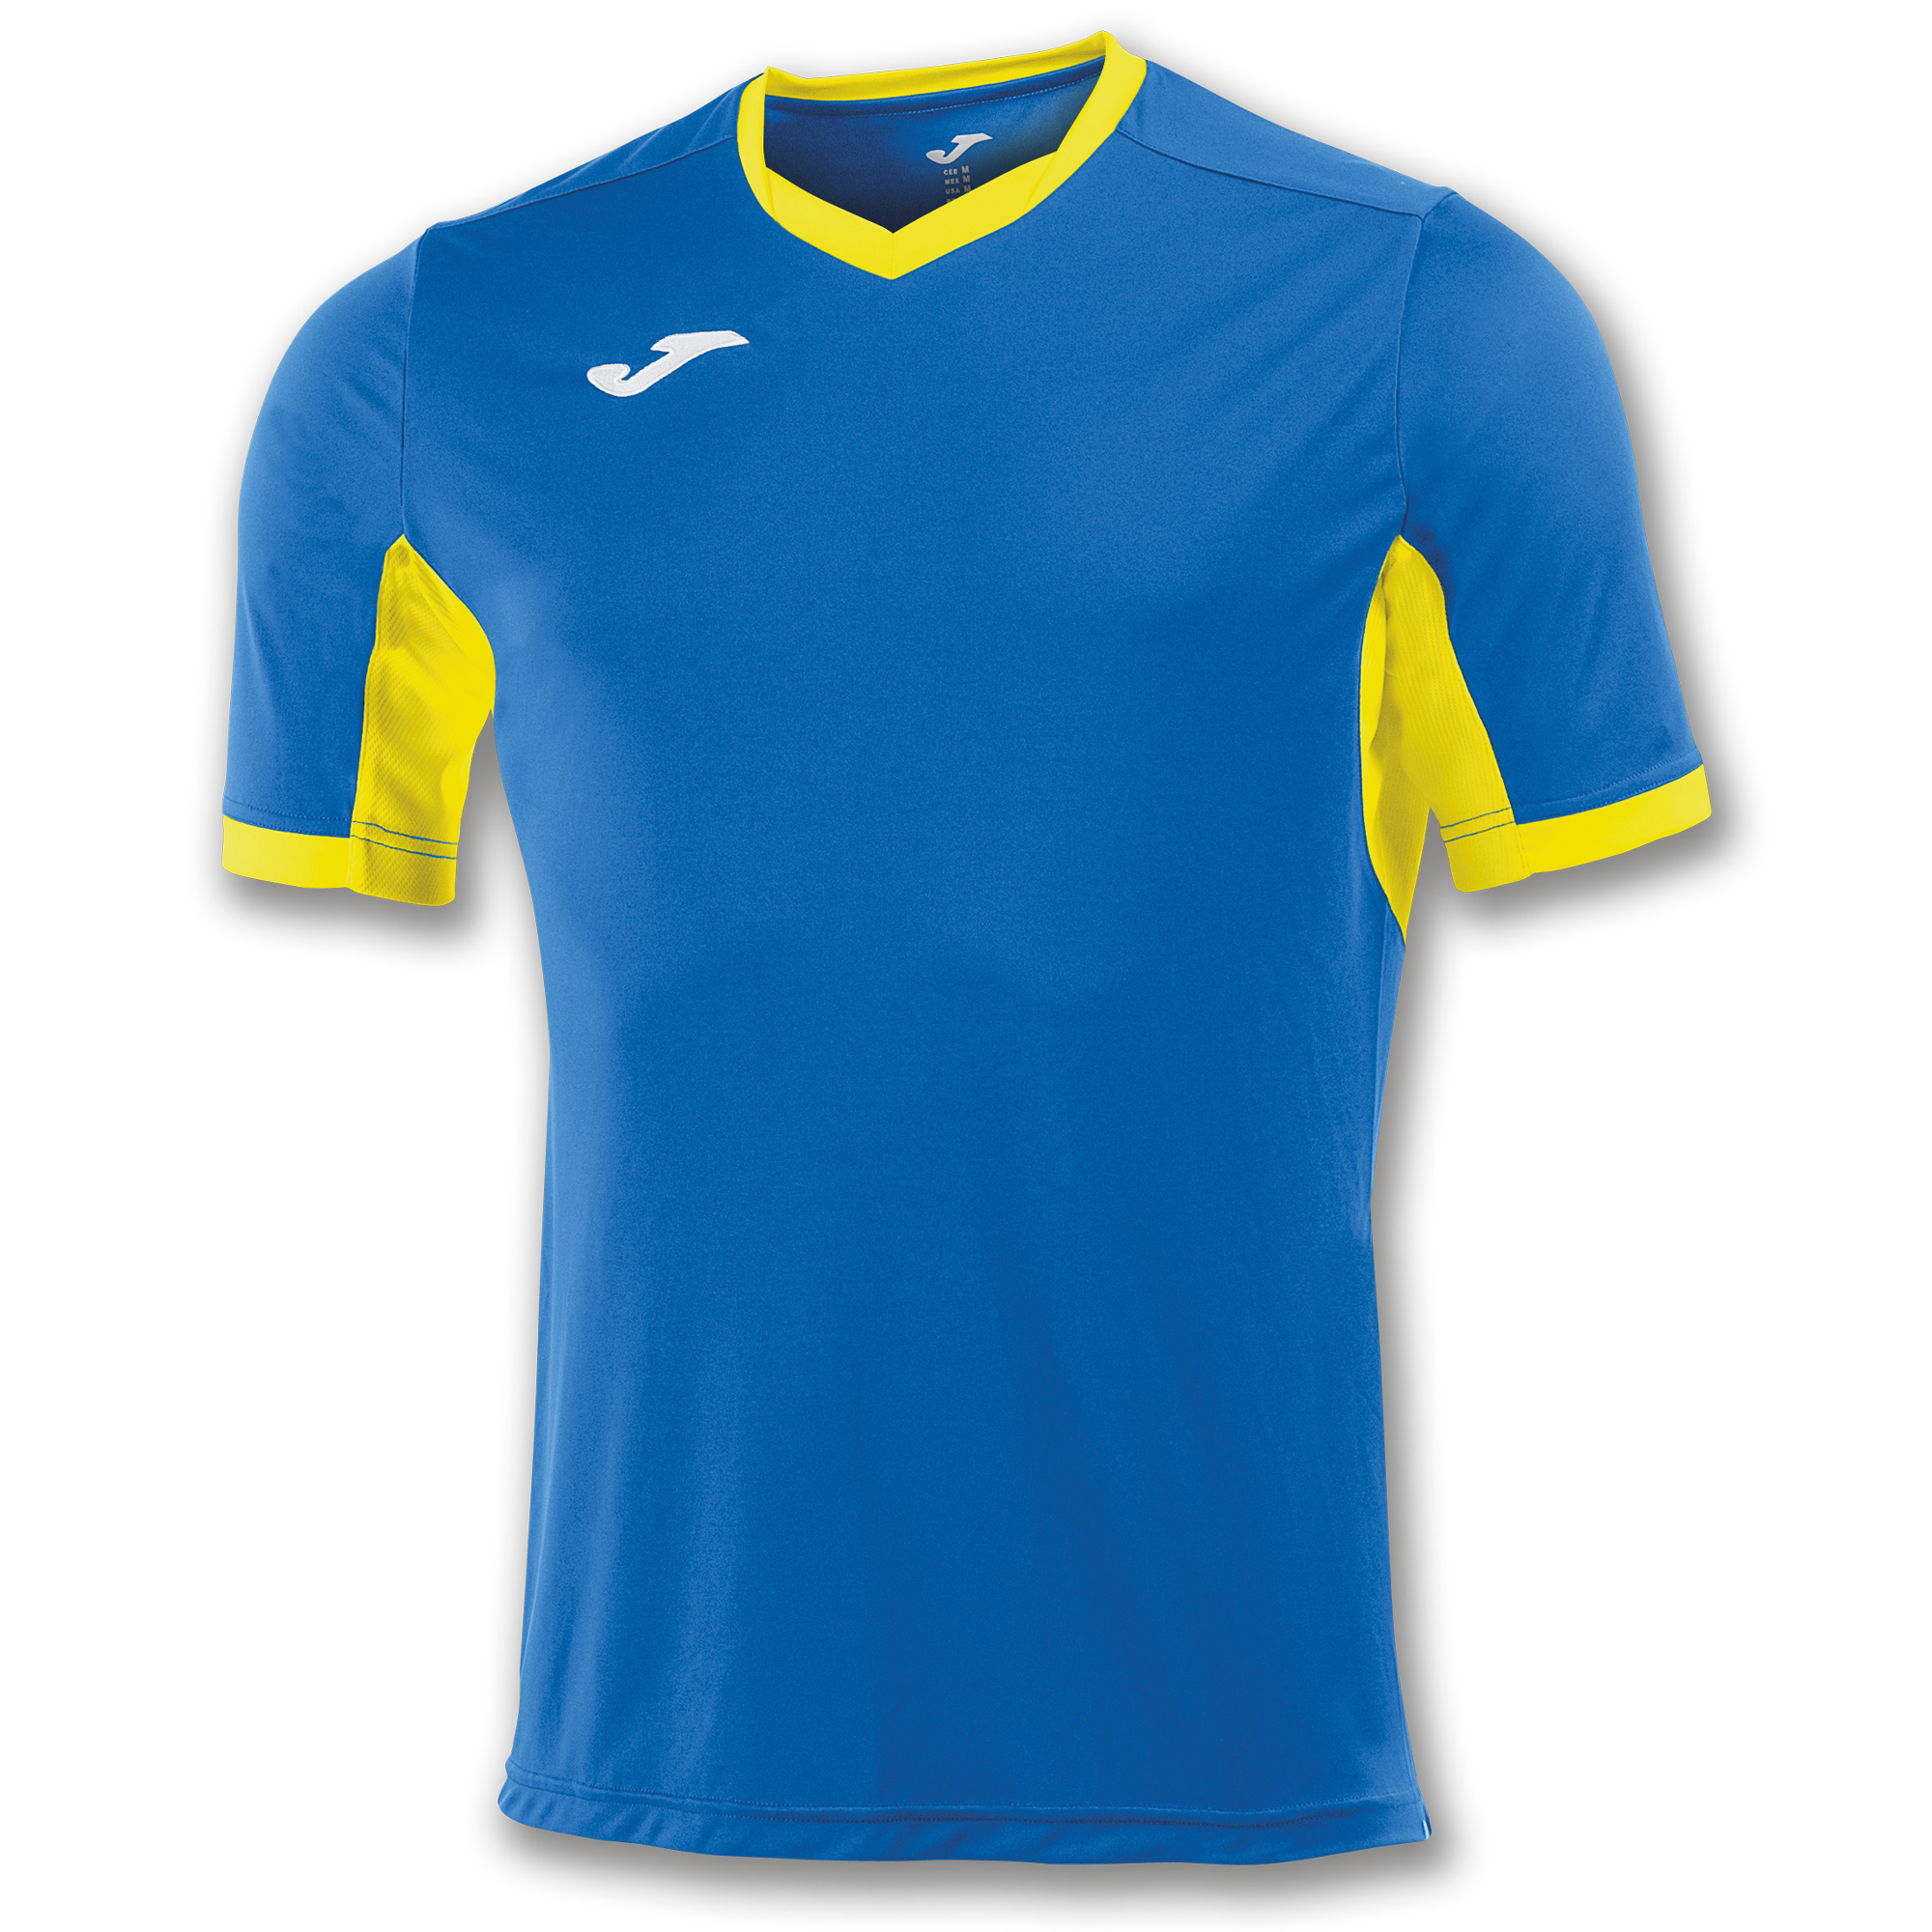 8bab5d0b S/S T-SHIRT CHAMPION IV ROYAL BLUE-YELLOW | JOMA